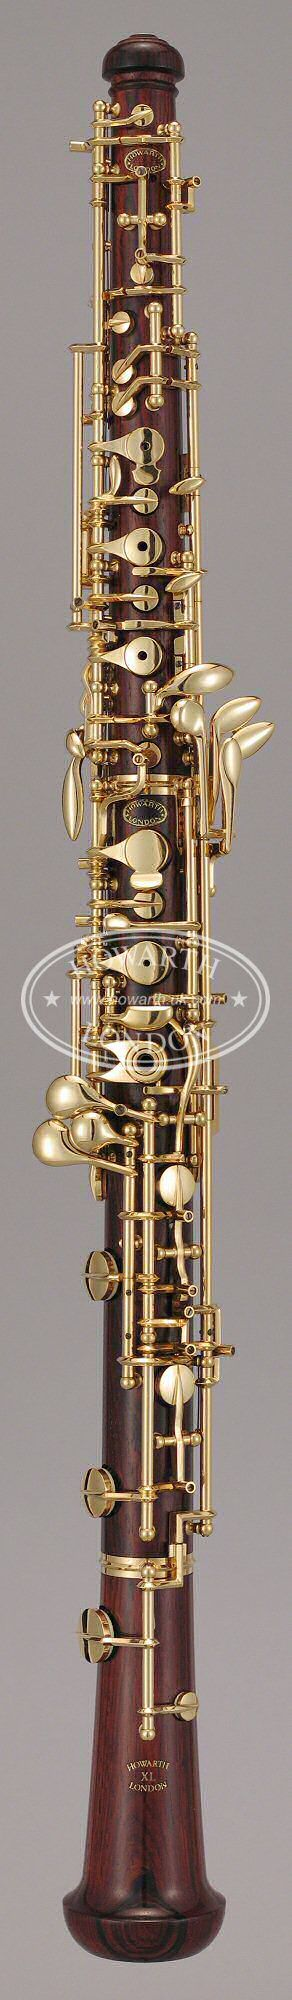 hello gorgeous :) dream oboe Because I'm an oboist. . .  *drooling*